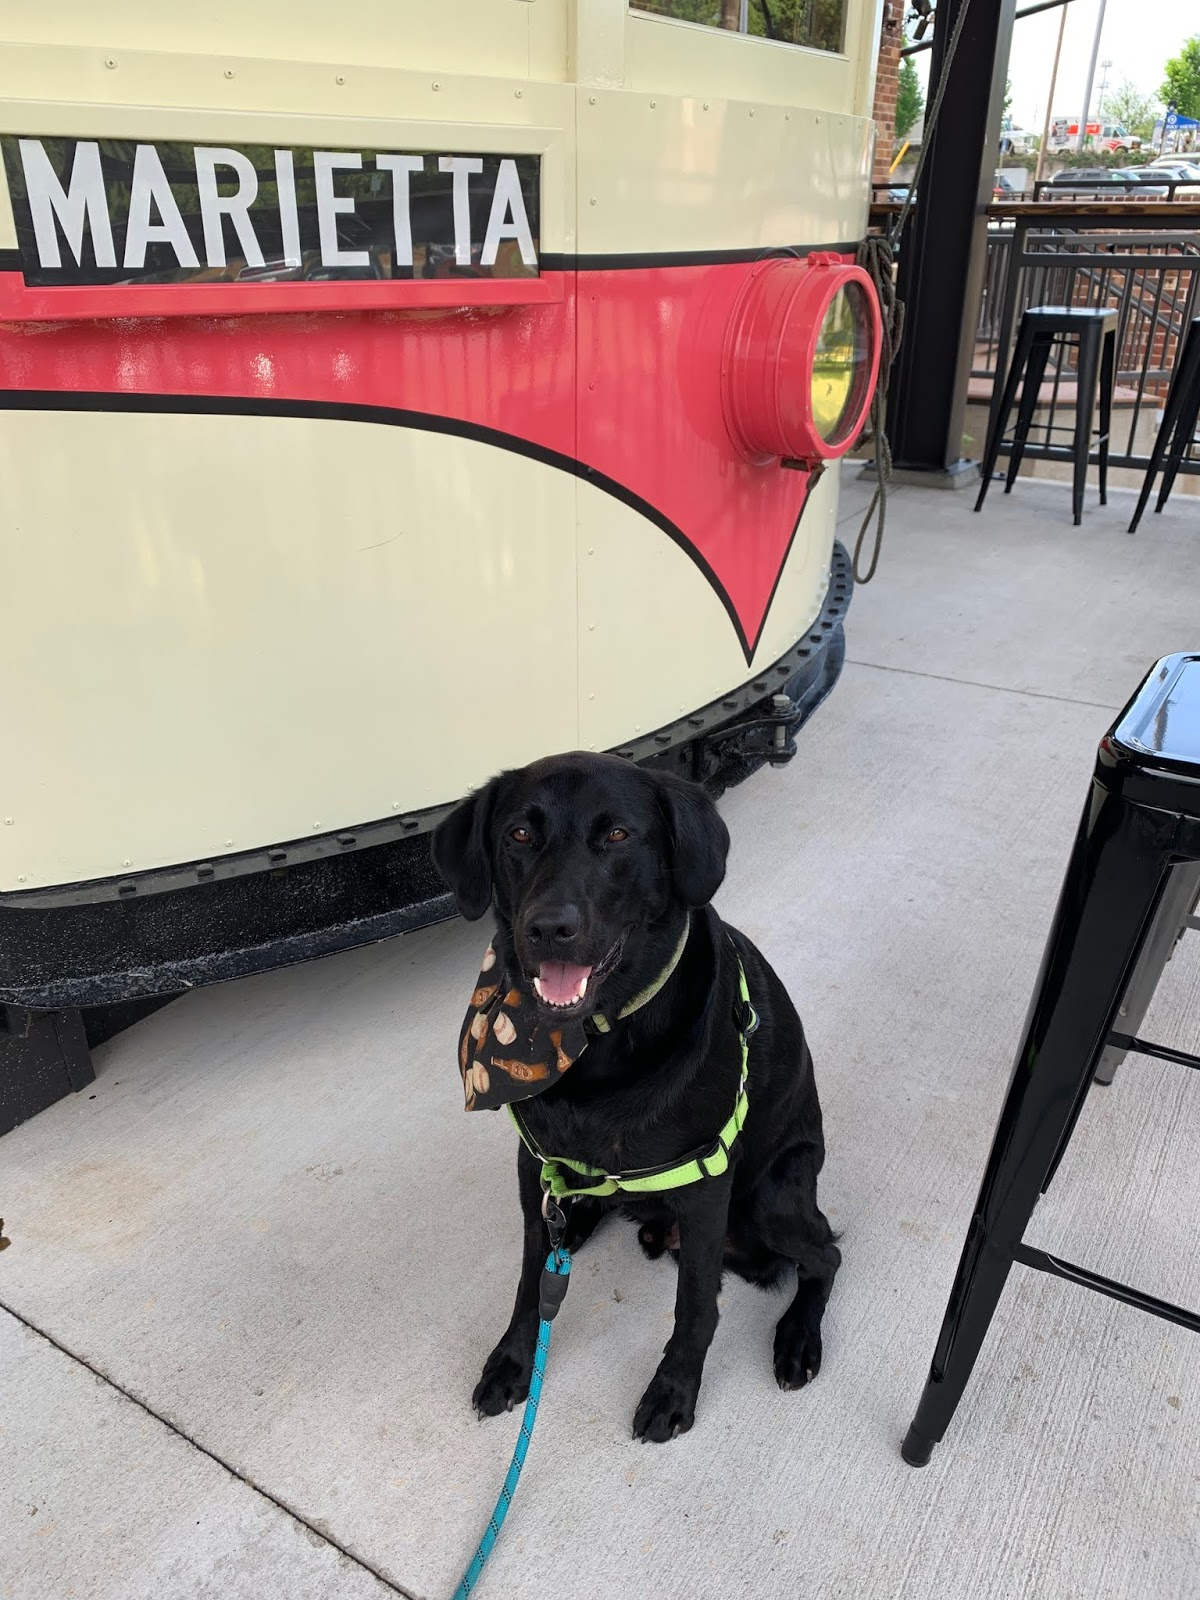 albus goes to see the marietta square market trolley car